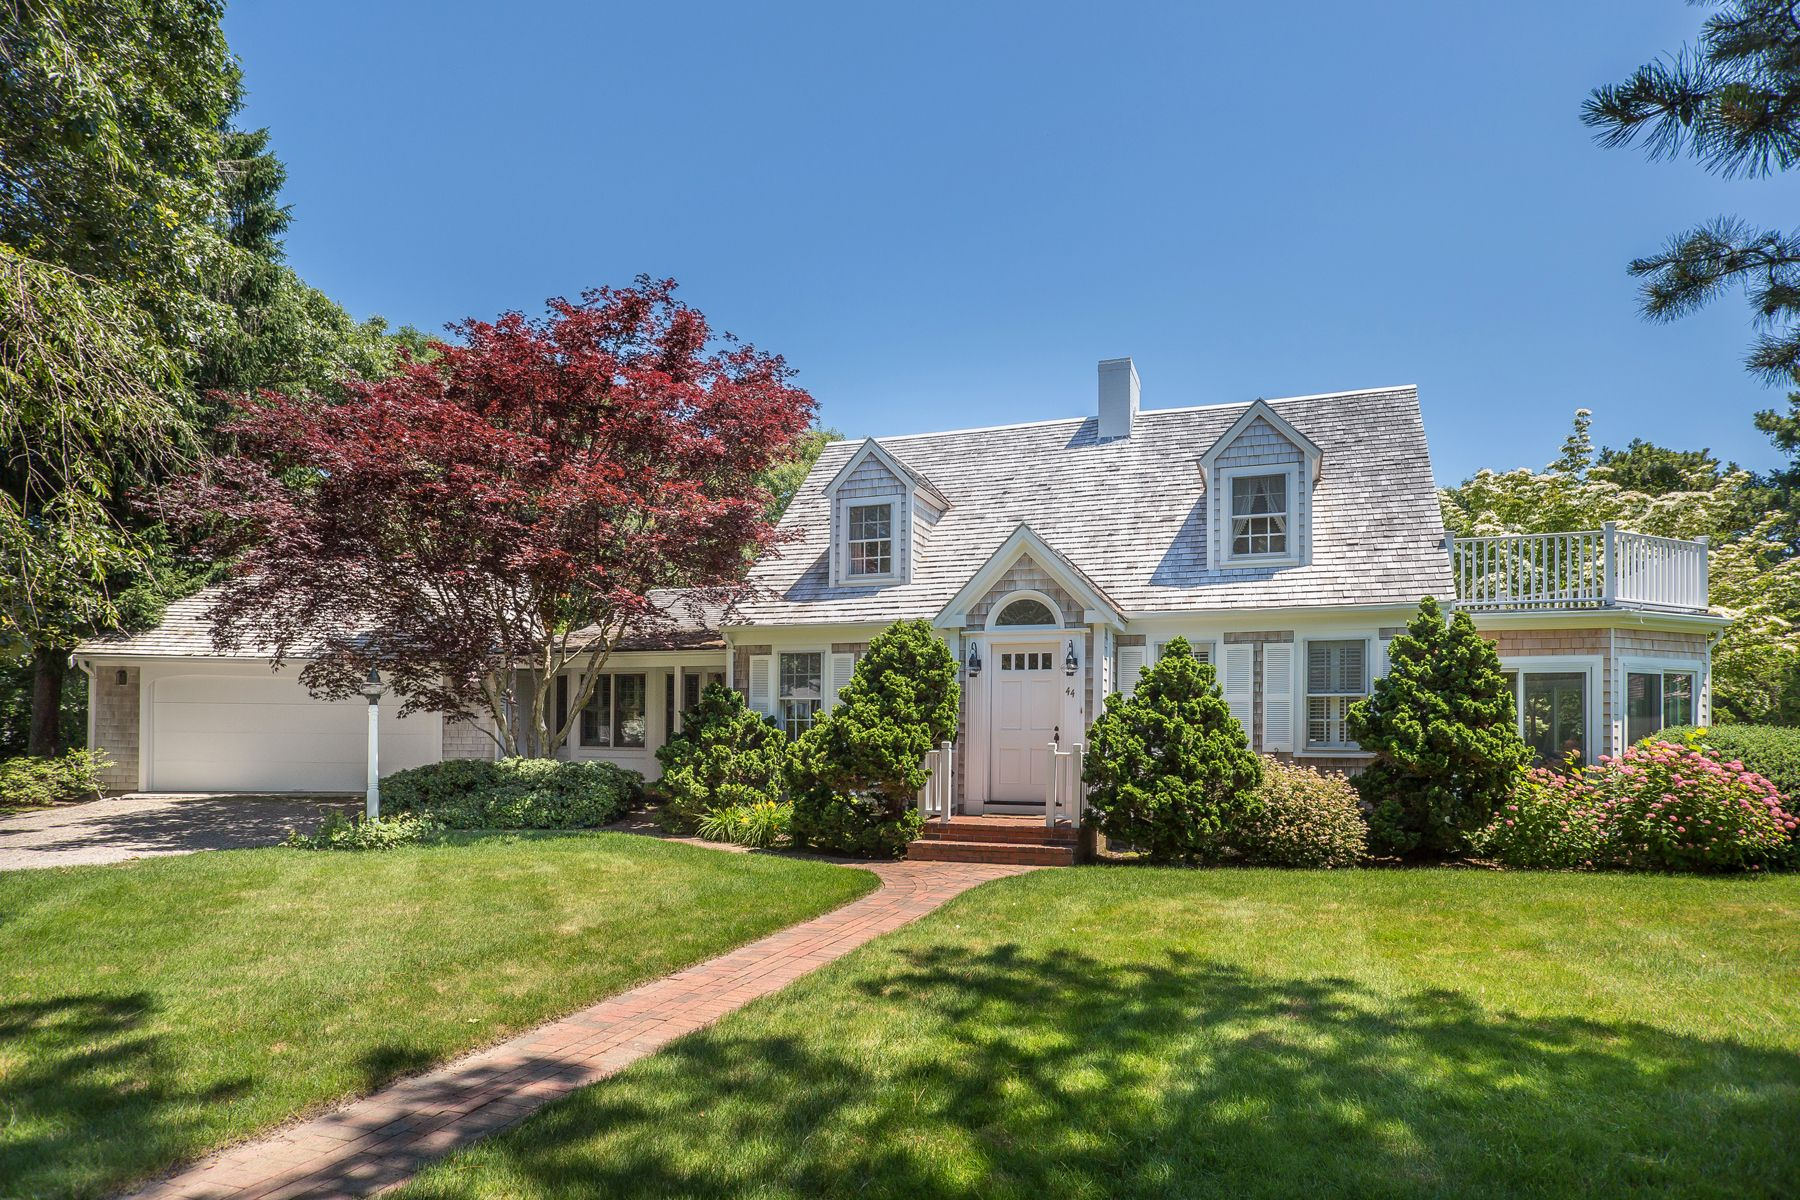 Single Family Homes for Active at 44 Eel River Road, Osterville 44 Eel River Road Osterville, Massachusetts 02655 United States